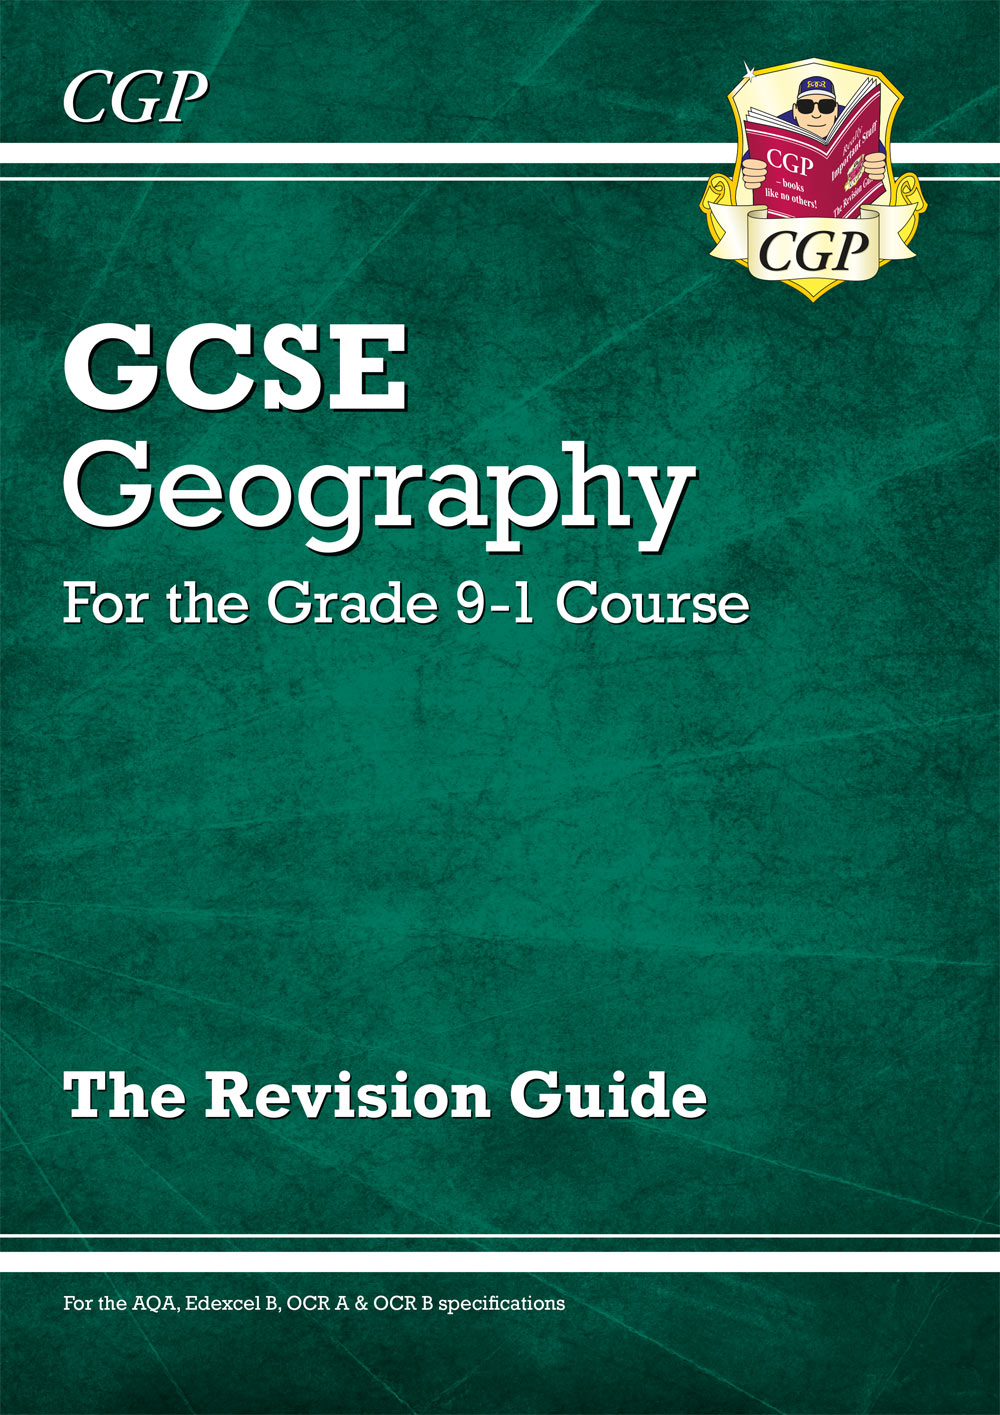 GHR44 - New Grade 9-1 GCSE Geography Revision Guide